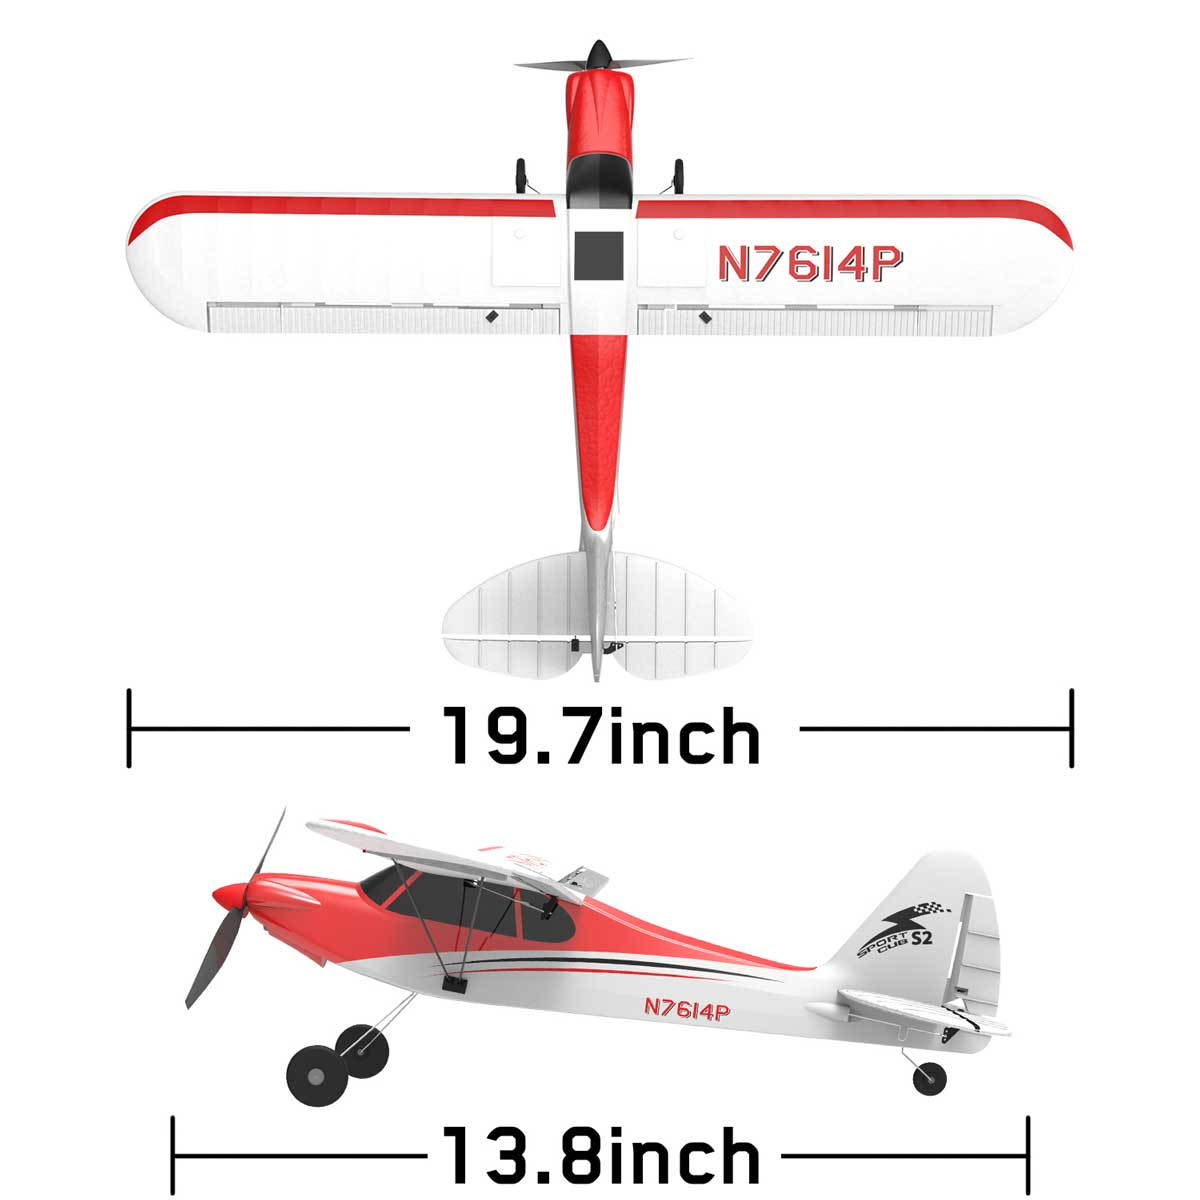 Sport Cub 500 4Ch RC Trainer Airplane w- 6-Axis Gyro One-key Aerobatic Park flyer (761-4) RTF